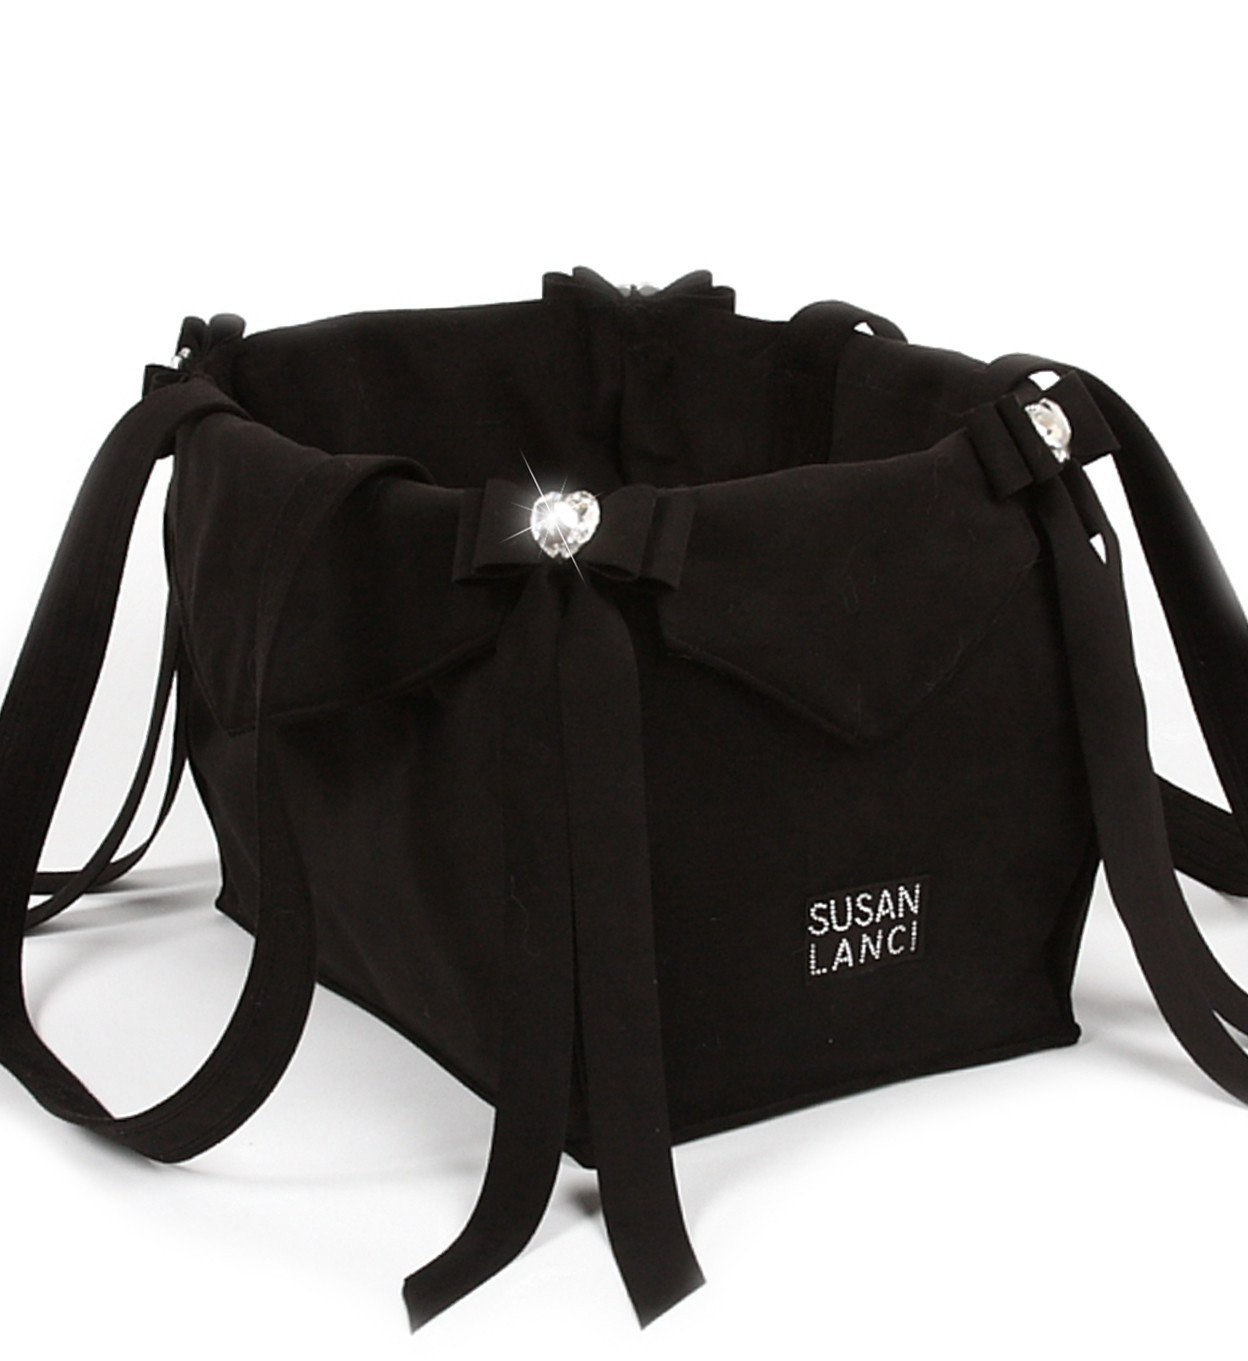 Black Tail Bow Heart Luxury Dog Carrier by Susan Lanci